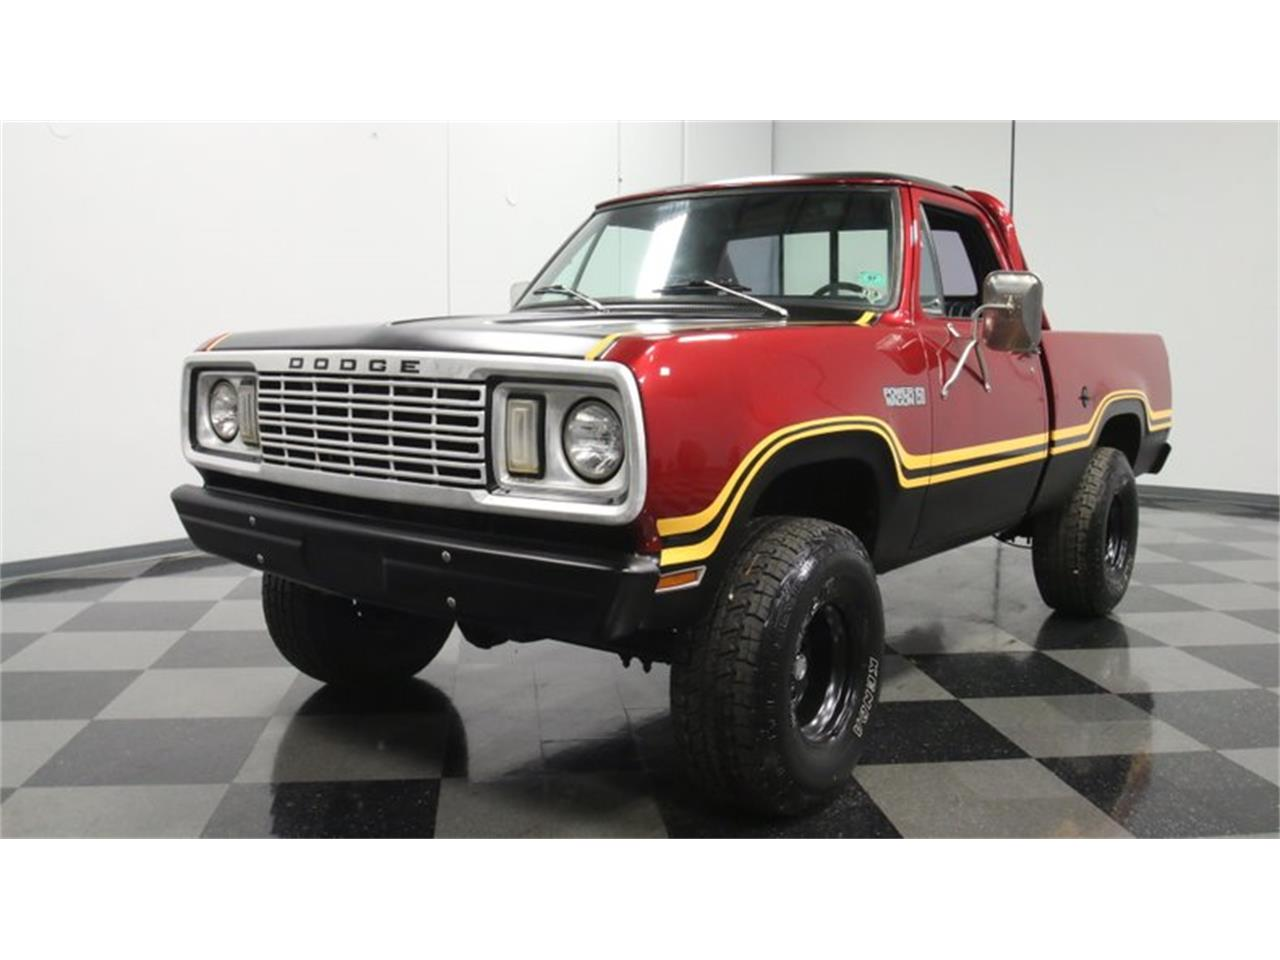 1978 Dodge Power Wagon for sale in Lithia Springs, GA – photo 5